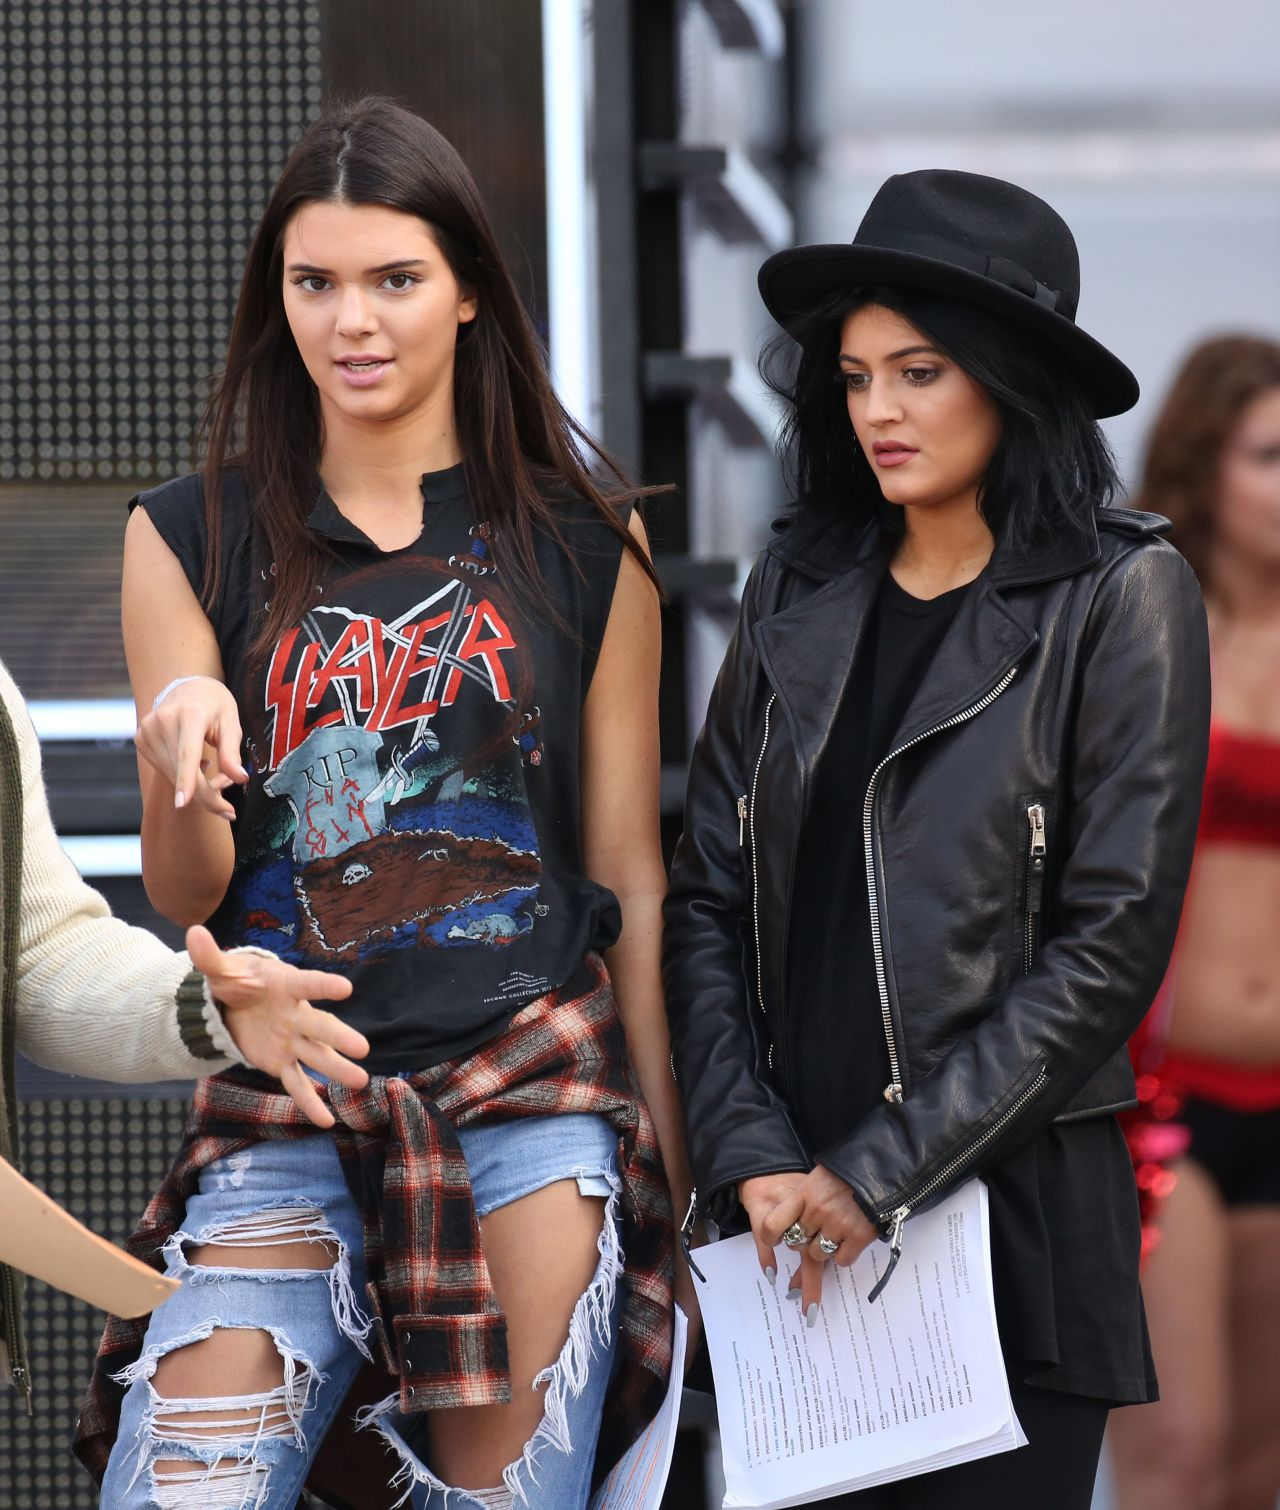 Kendall Jenner and Kylie Jenner – 2014 MuchMusic Video Awards Rehearsal in Toronto